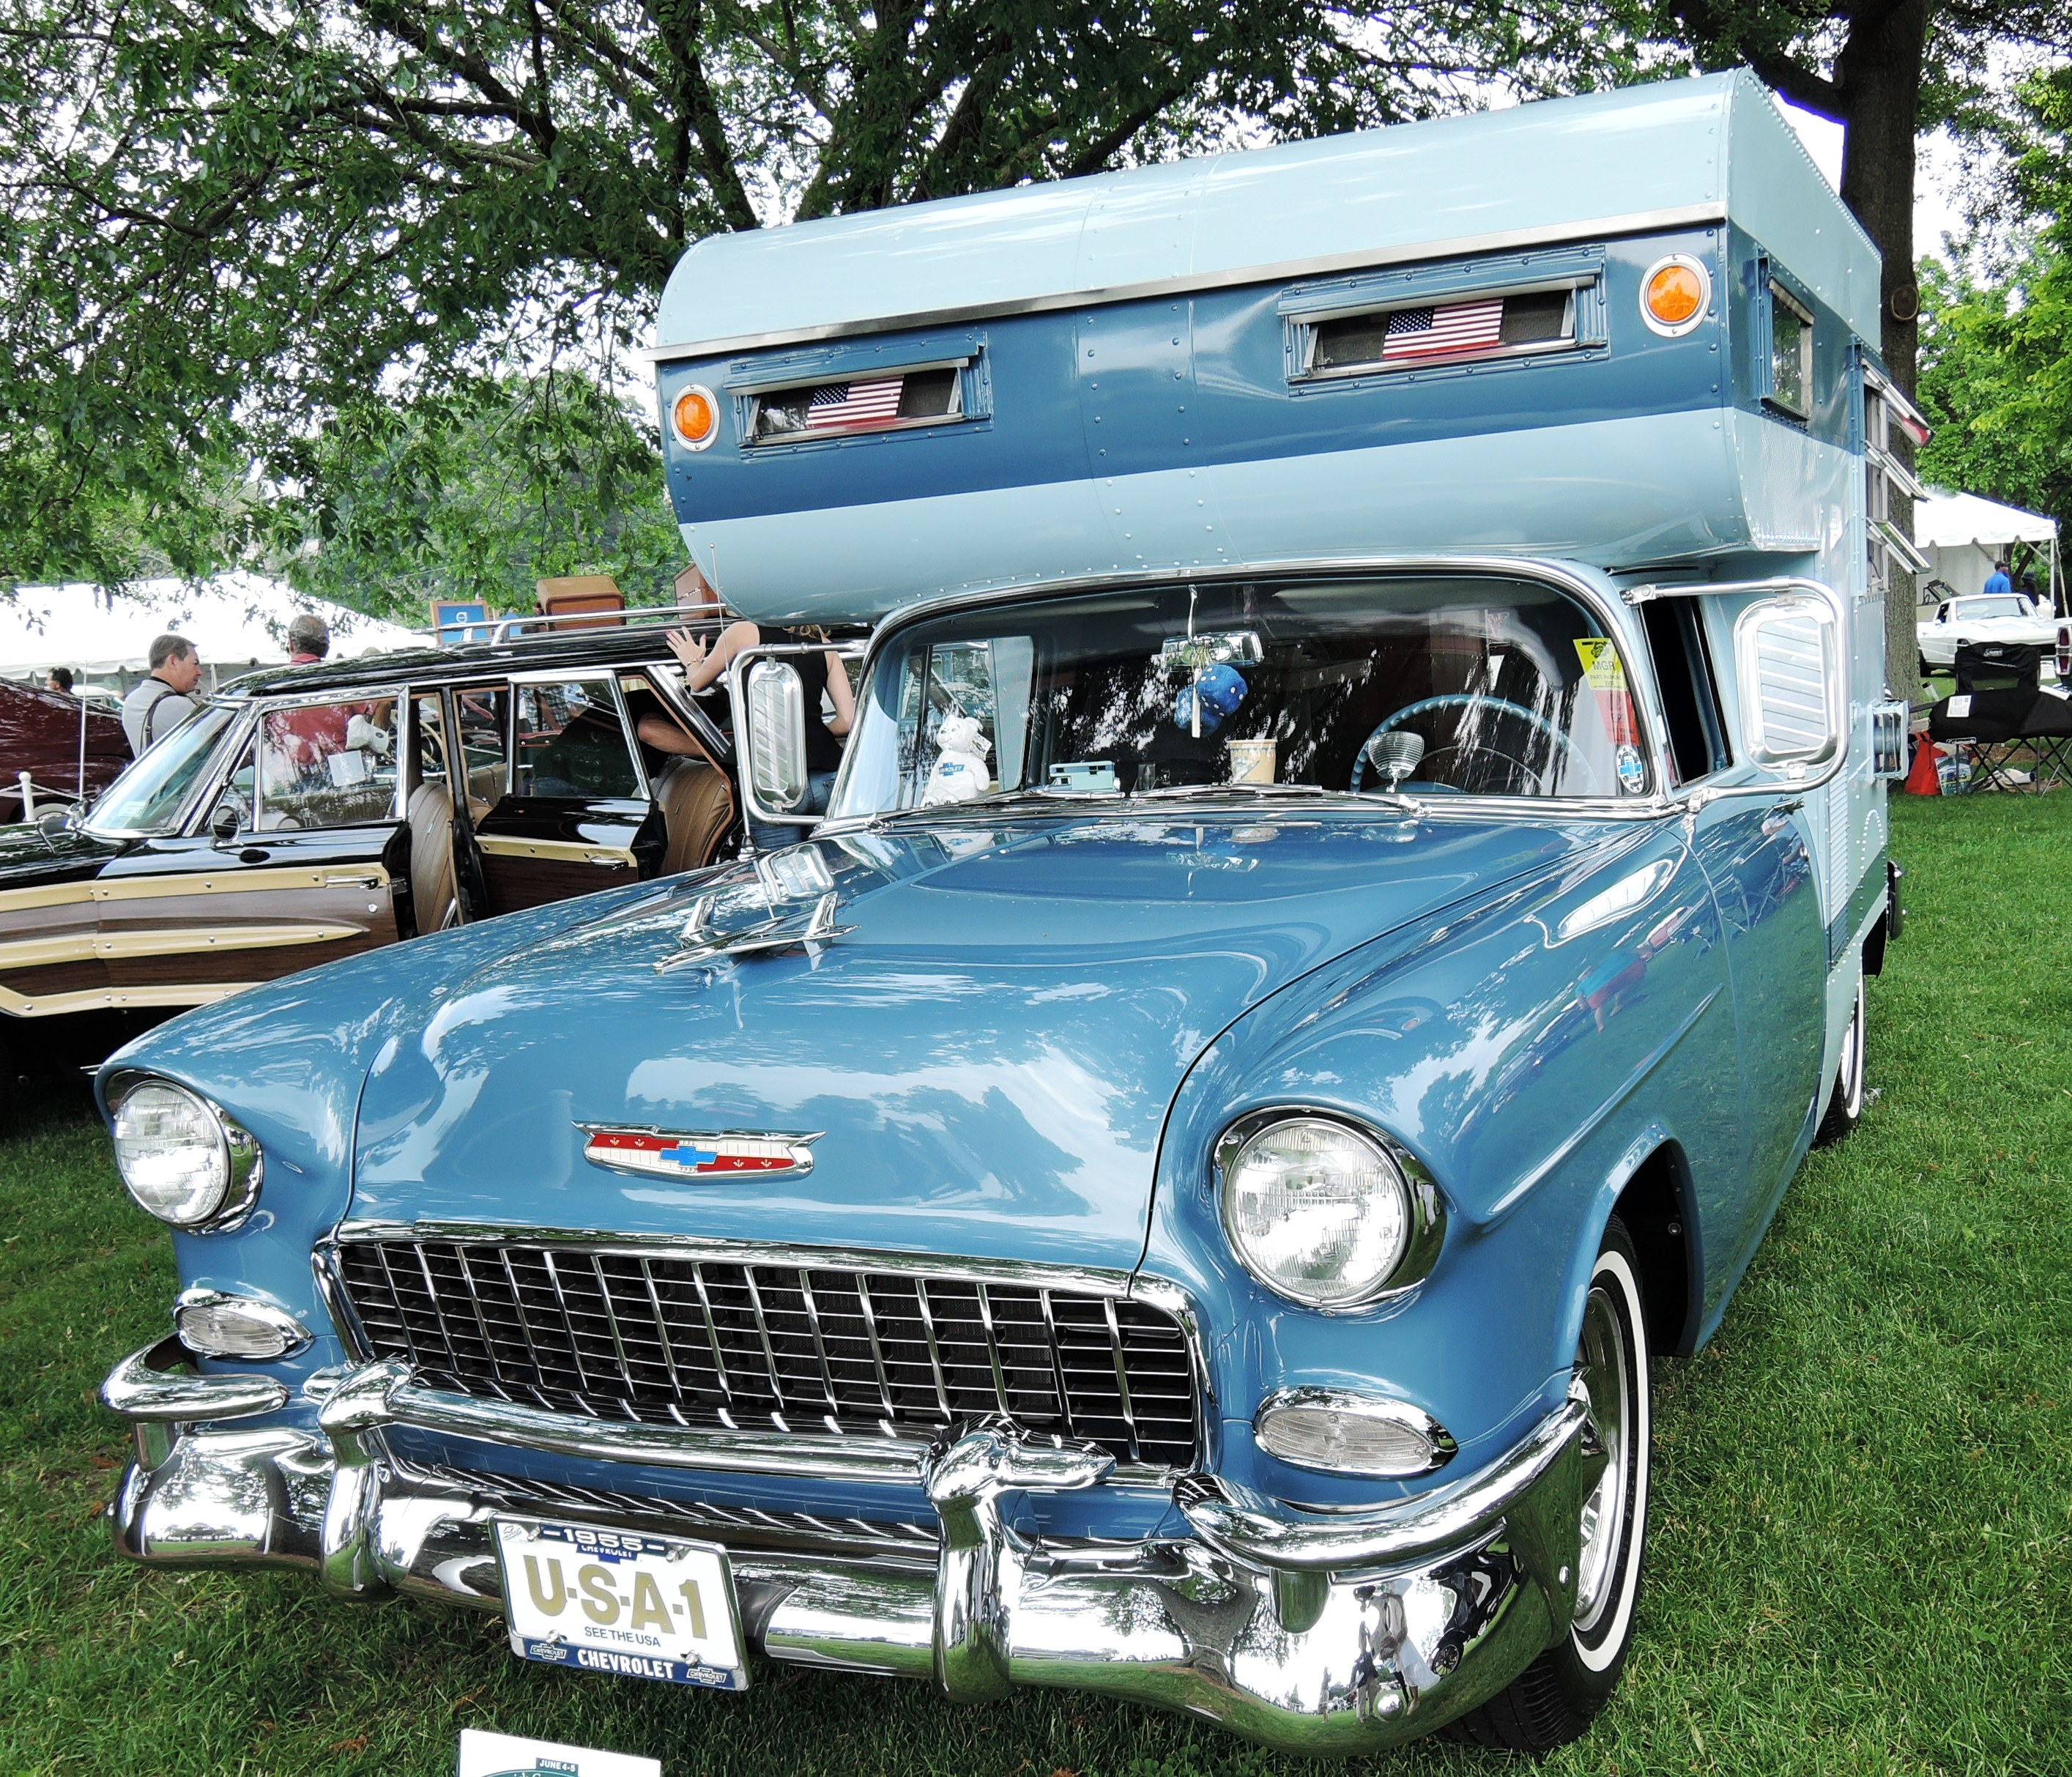 blue 1955 Chevrolet Bel Air Camper - greenwich concours